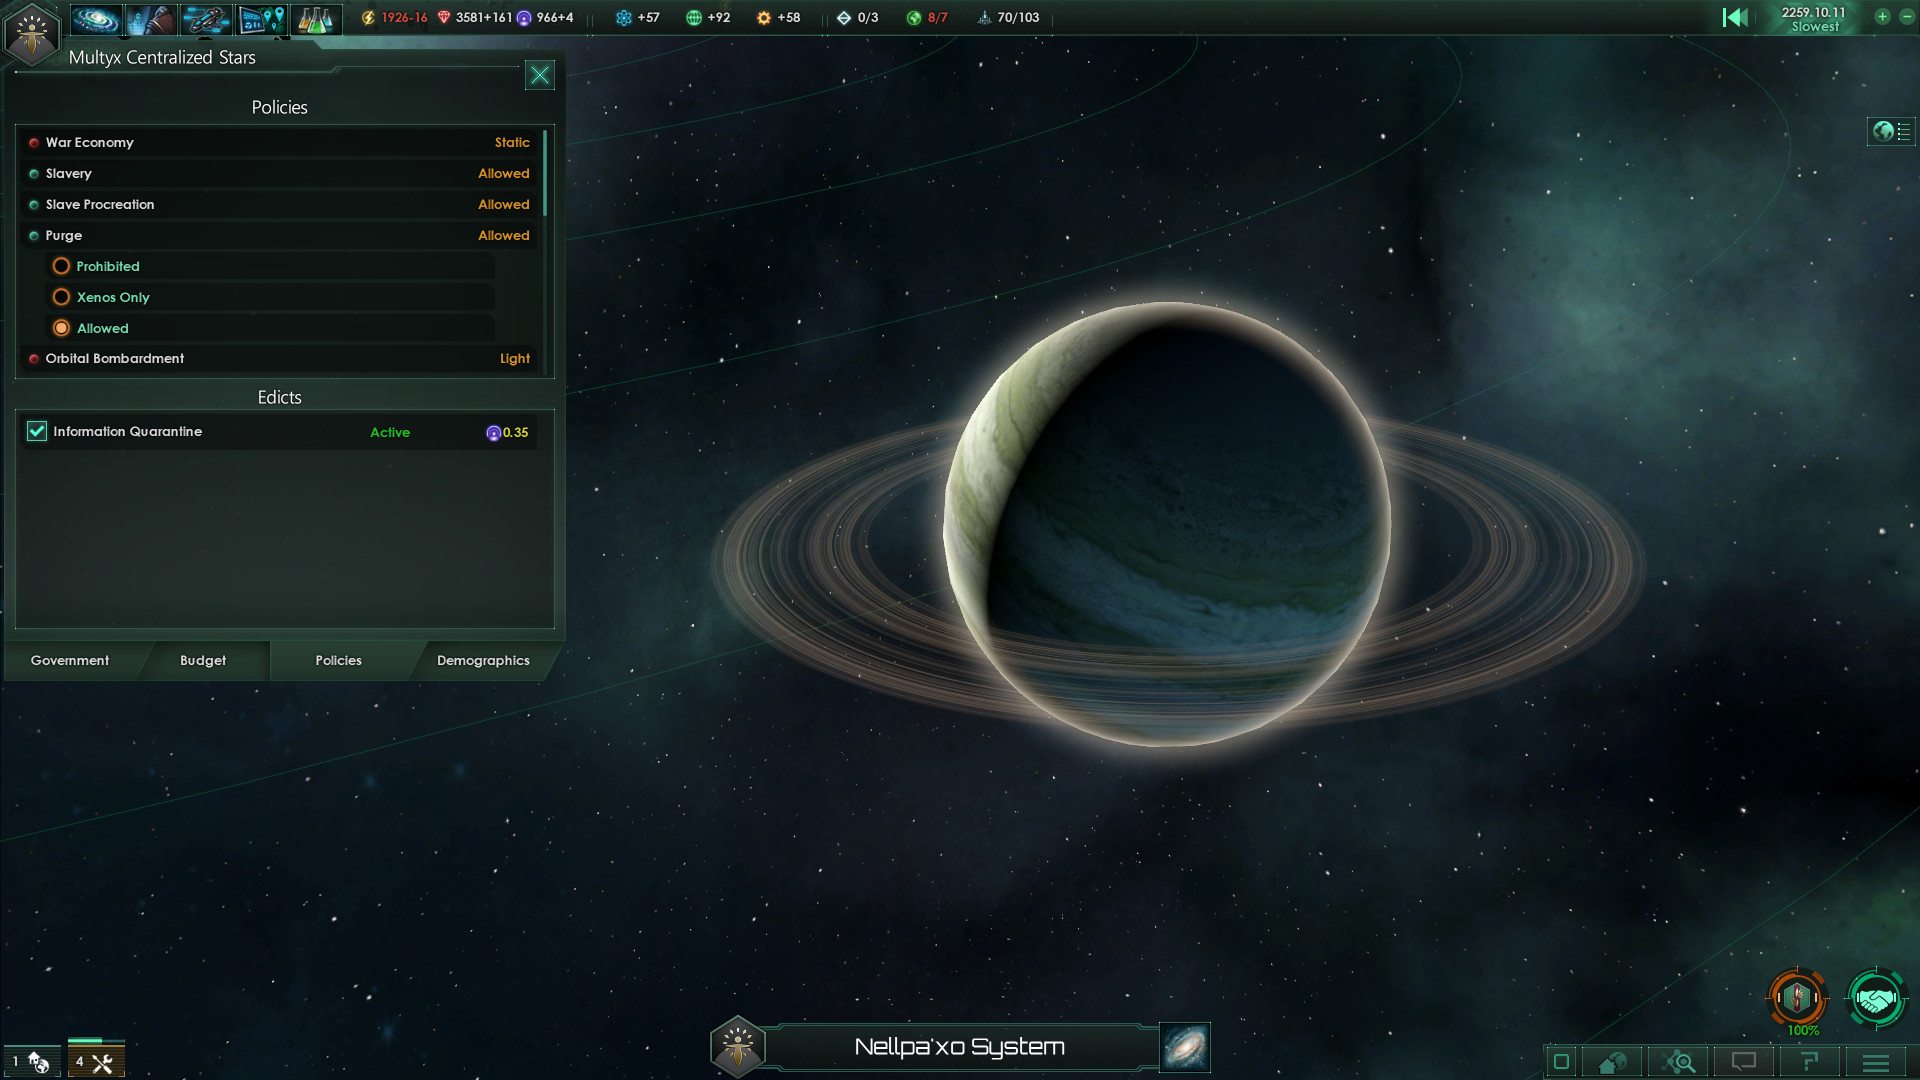 ss 7d11f9e12ec01dfc9e99e7a6e13428b9f4d5e1e3.1920x1080 - Stellaris Review - Reaching for the Stars